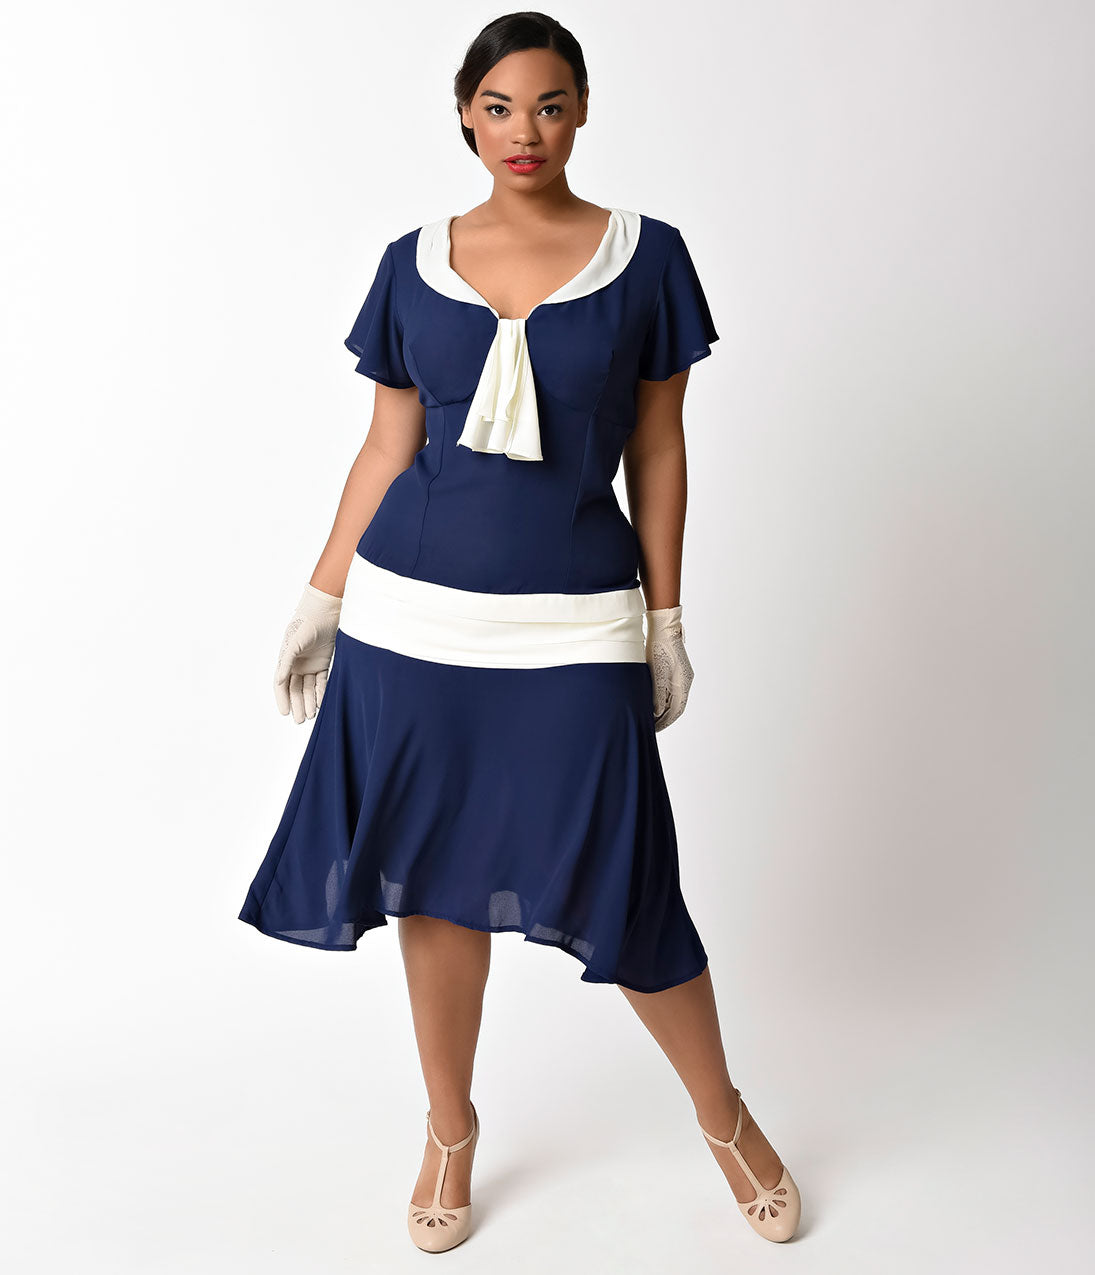 1920s Plus Size Flapper Dresses, Gatsby Dresses, Flapper Costumes Unique Vintage Plus Size 1920S Style Navy Blue  Ivory Wilshire Chiffon Flapper Day Dress $78.00 AT vintagedancer.com